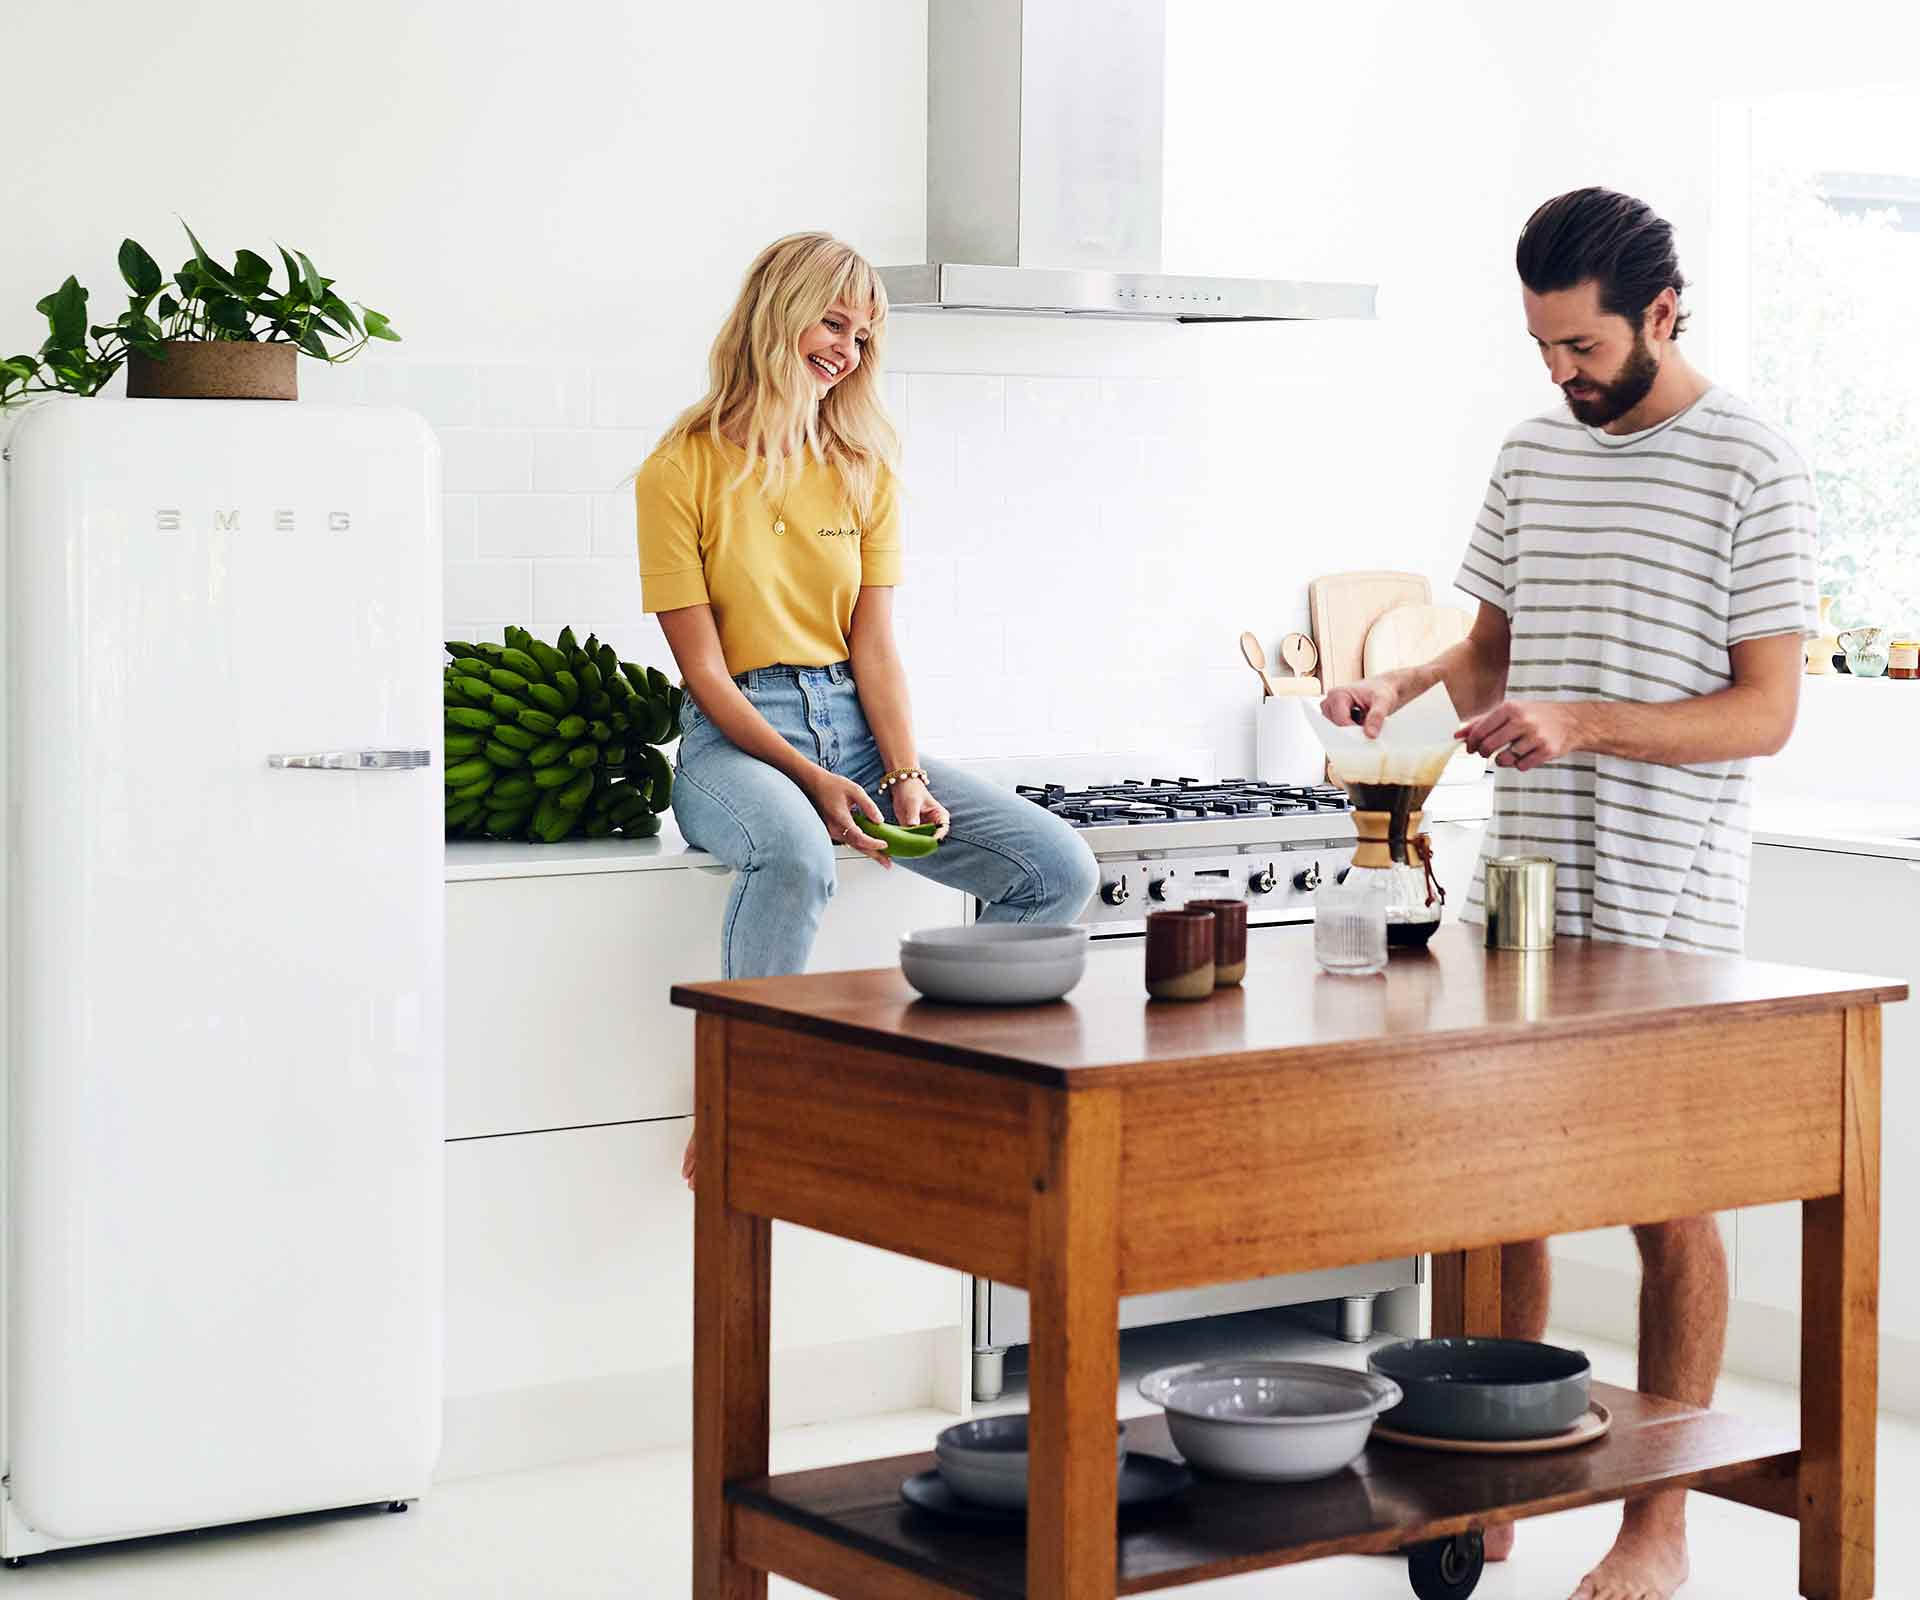 Moving in together? 7 pieces of advice on merging households